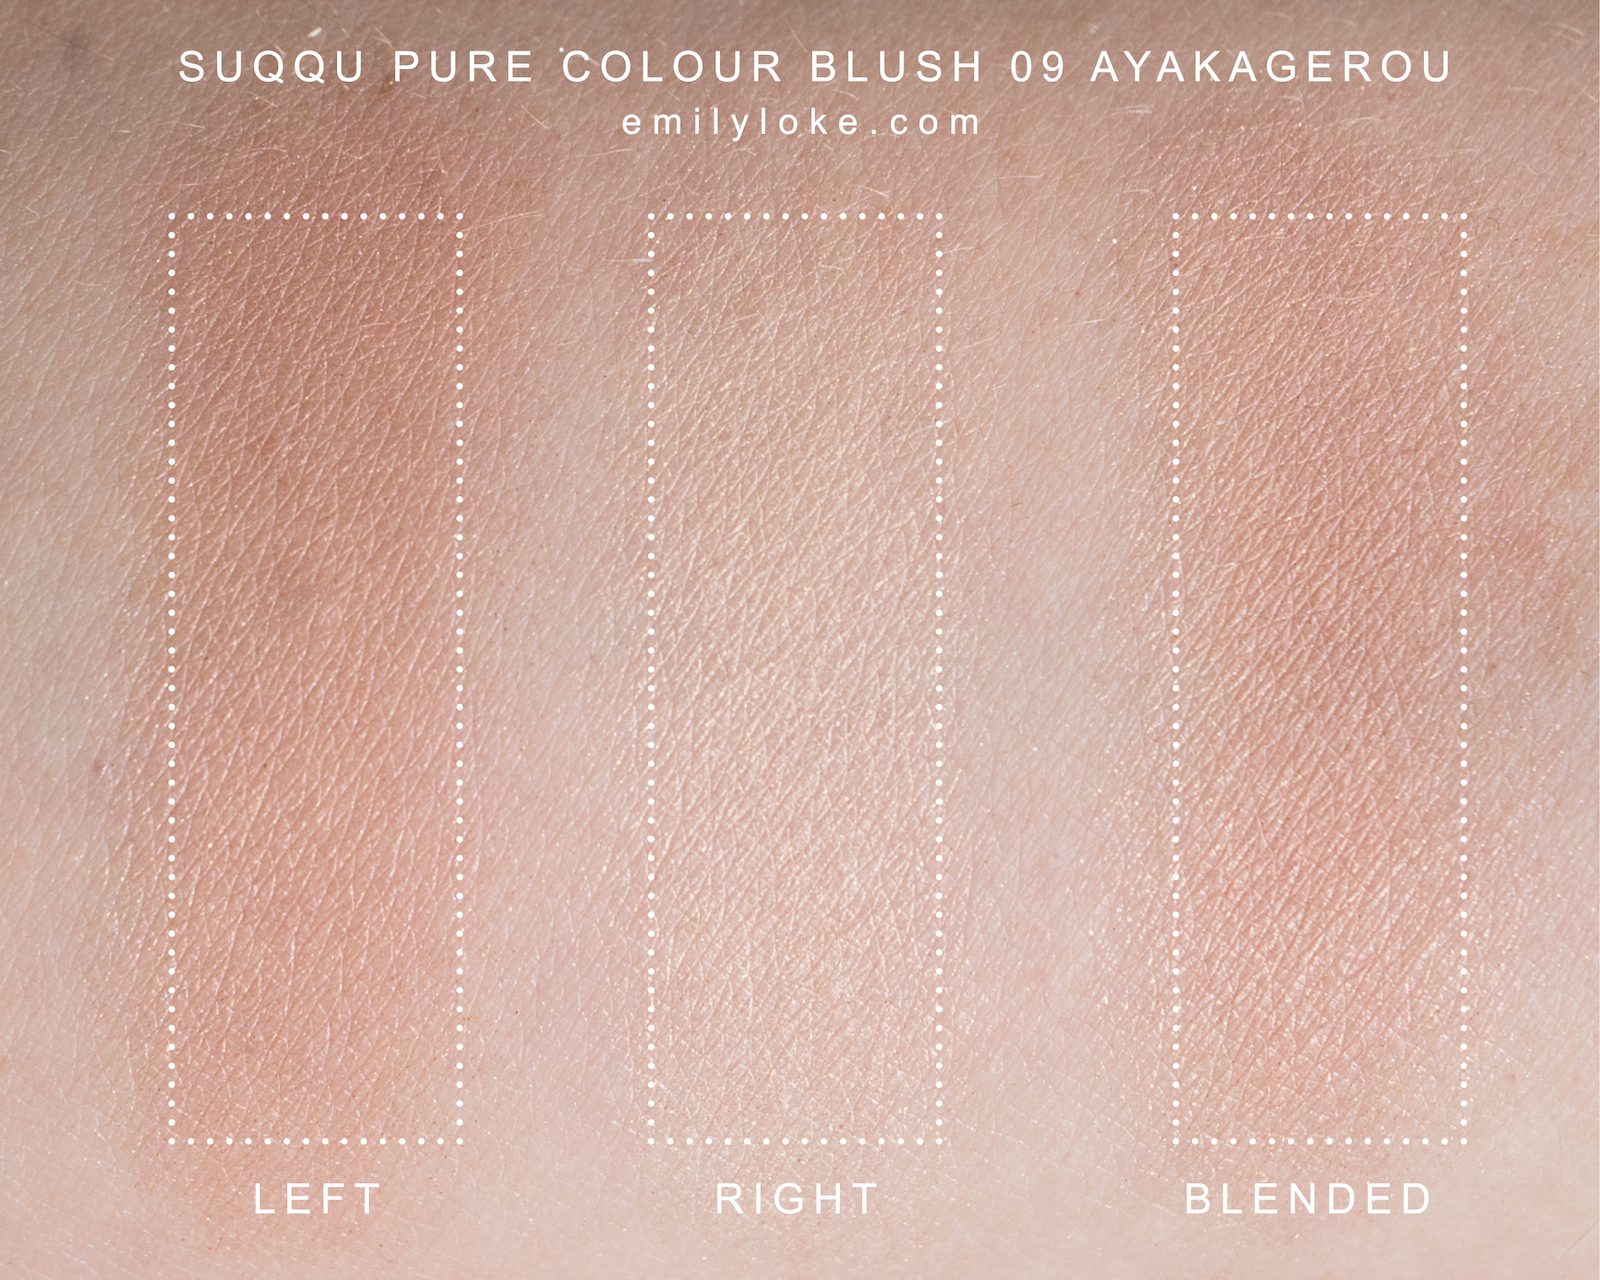 suqqu pure colour blush 09 Ayakagerou swatches